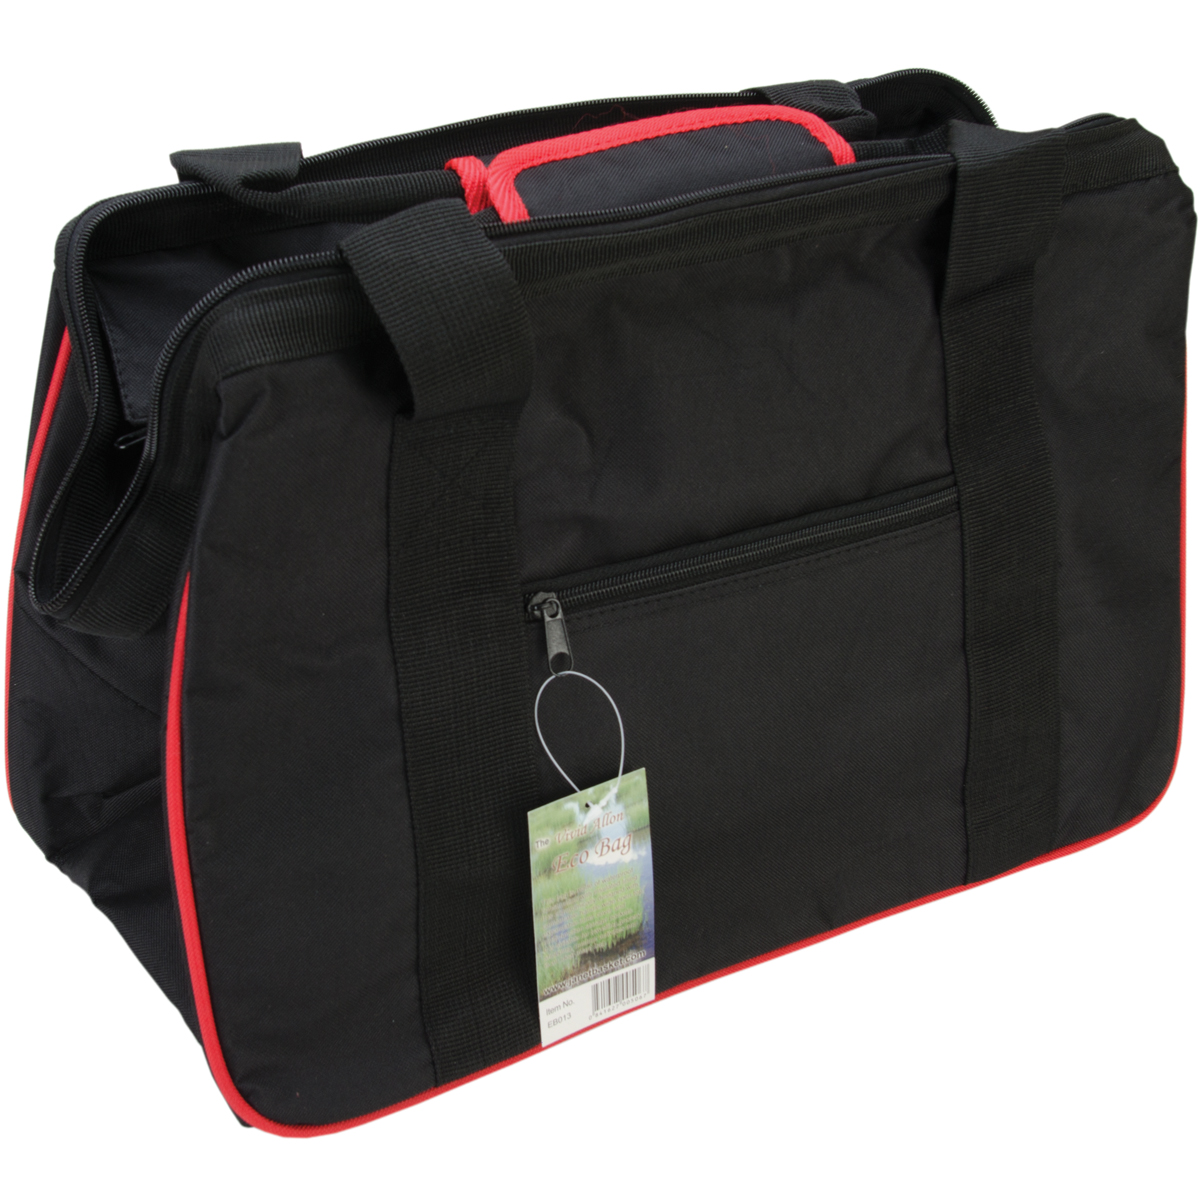 "JanetBasket Black/Red Eco Bag, 18"" x 10"" x 12"""